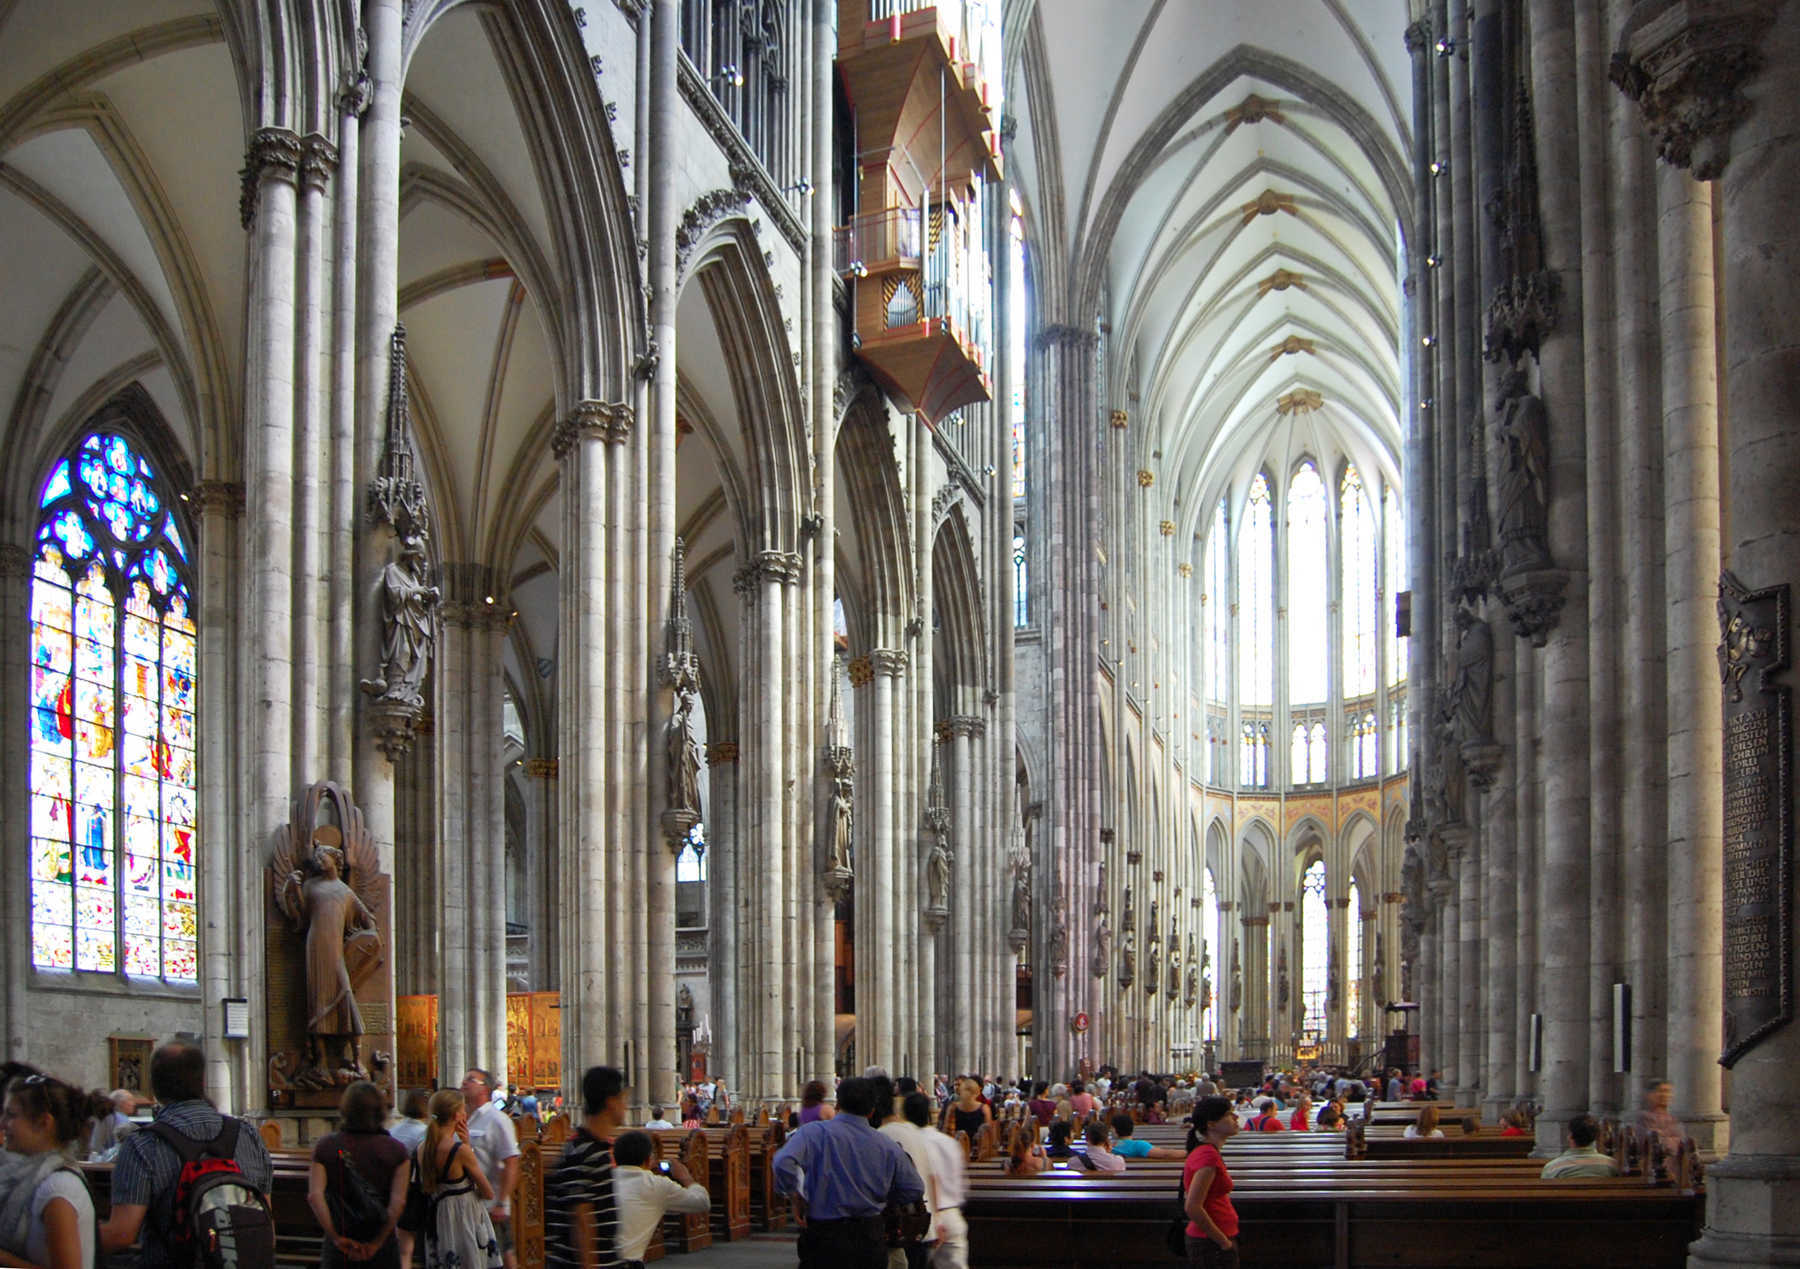 Cathedral Interior, Koln, Germany